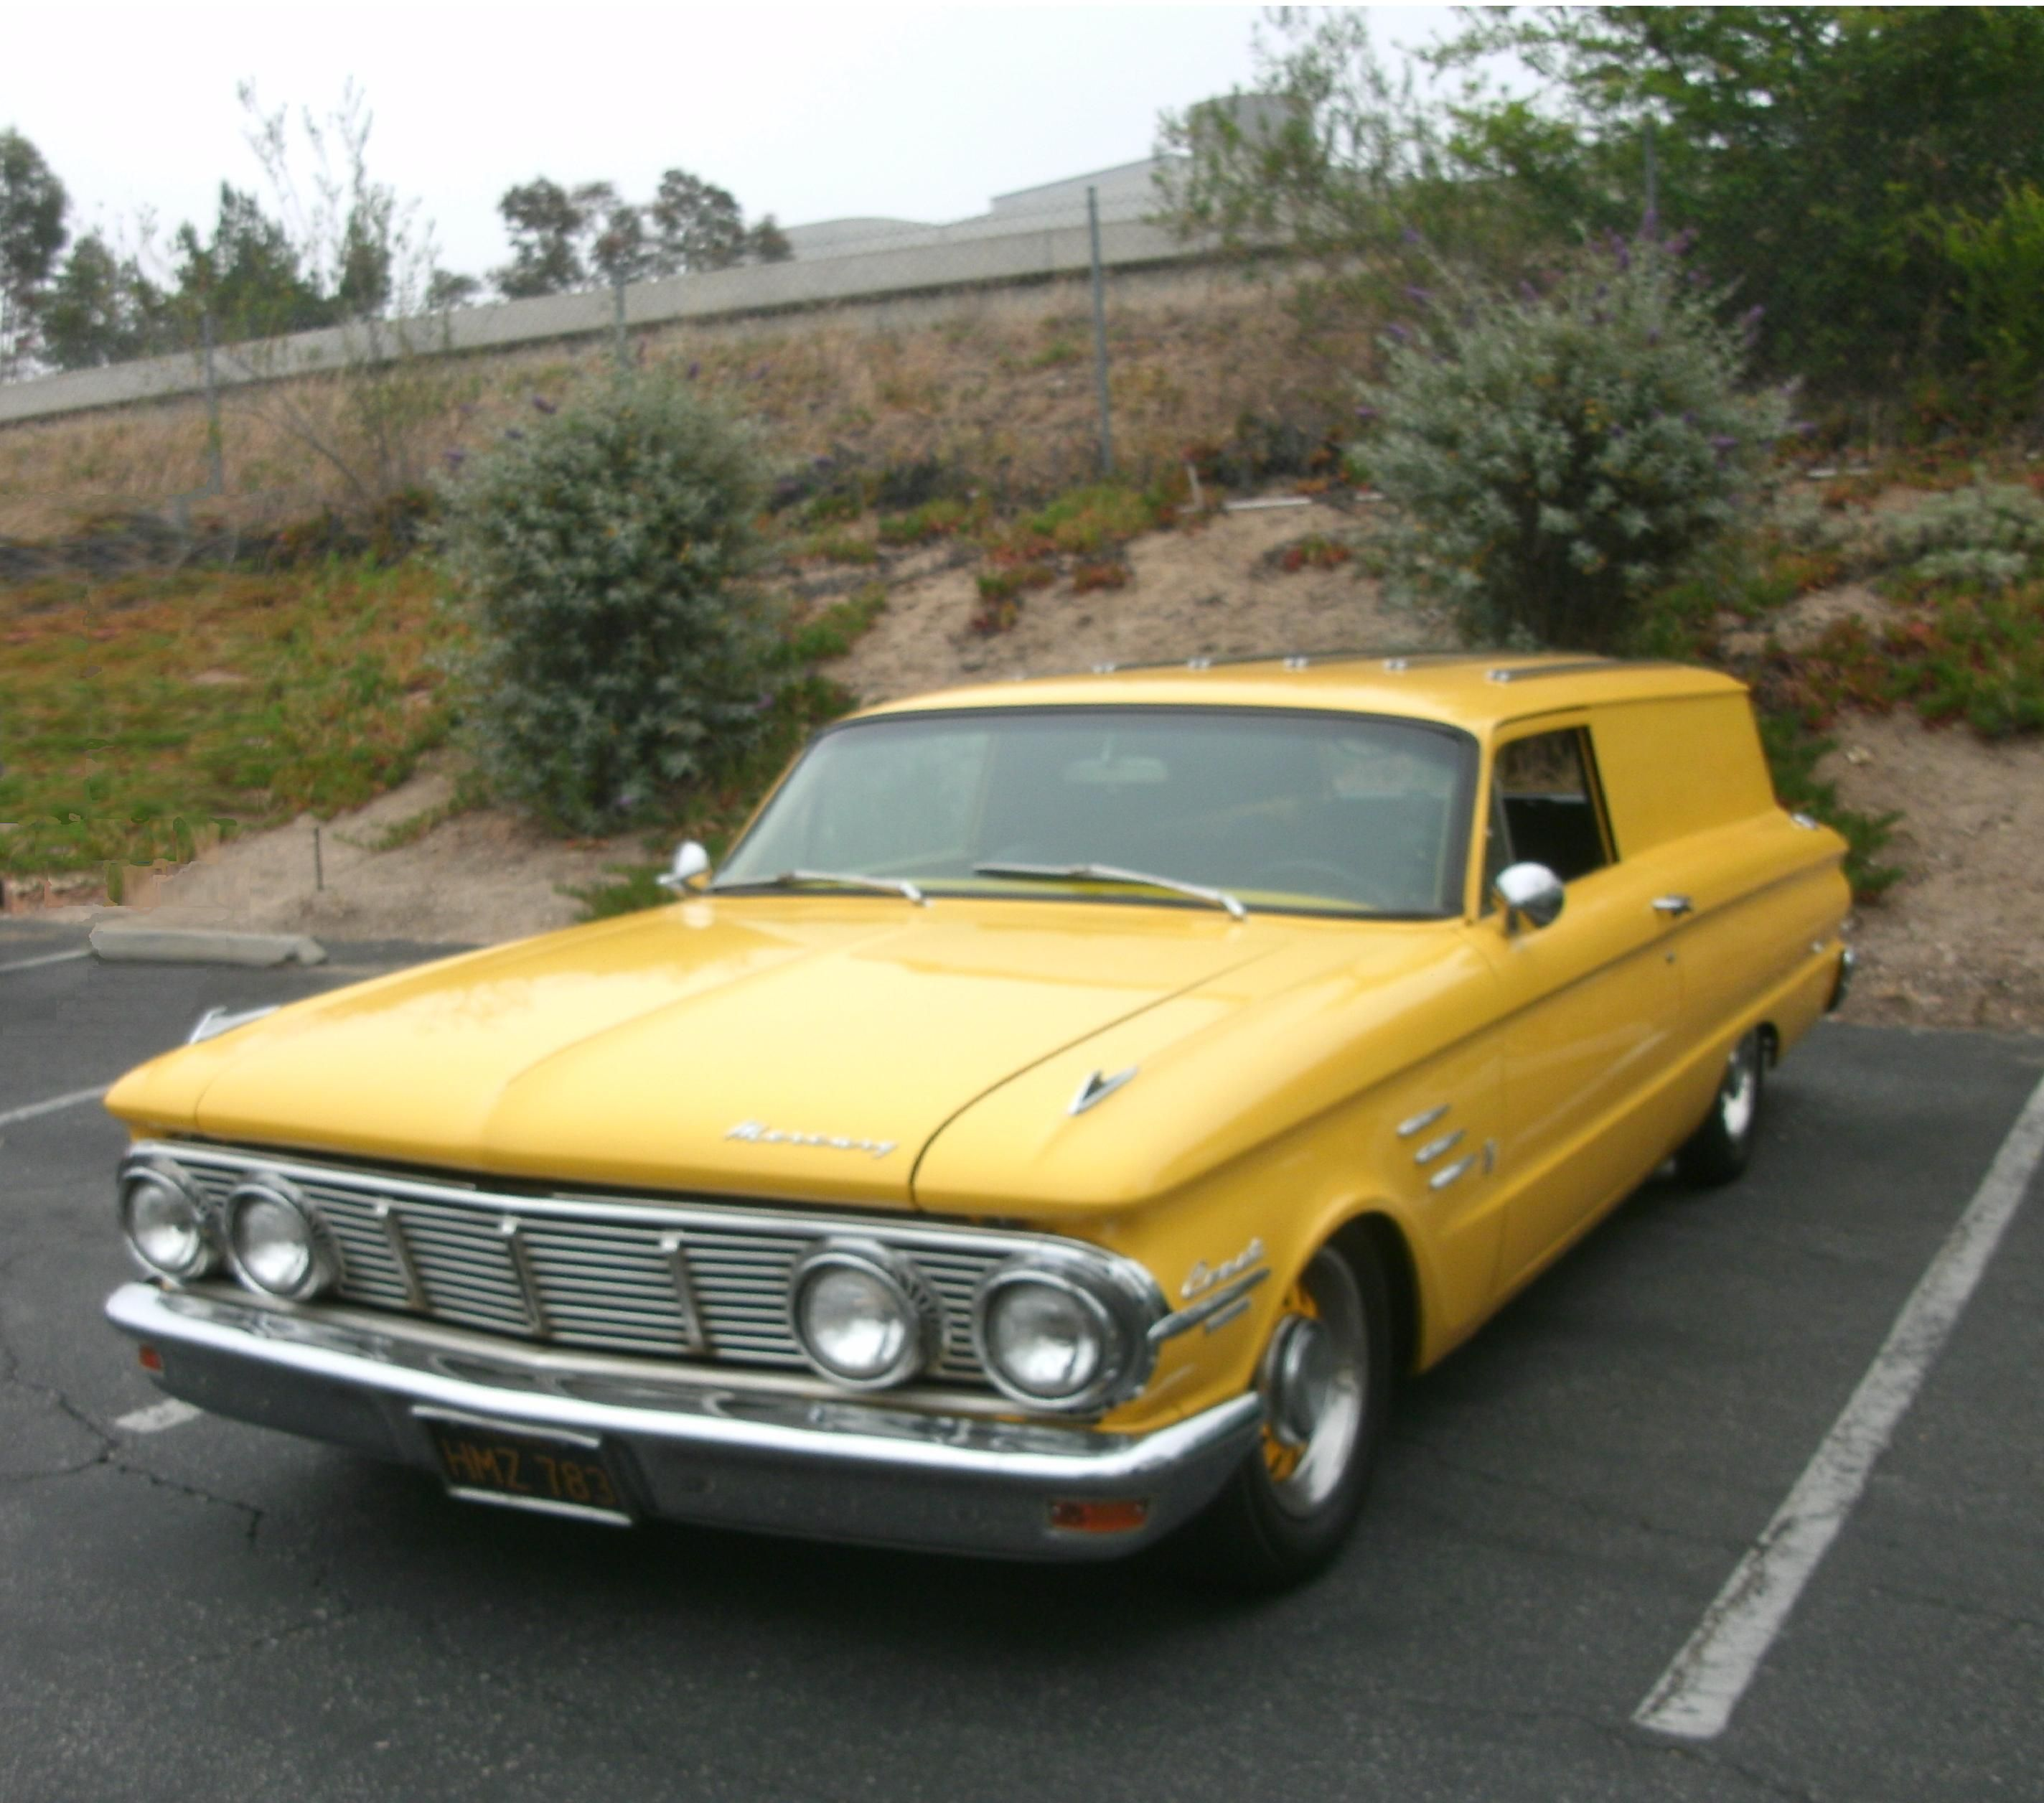 1963 Mercury Comet Sedan Delivery.